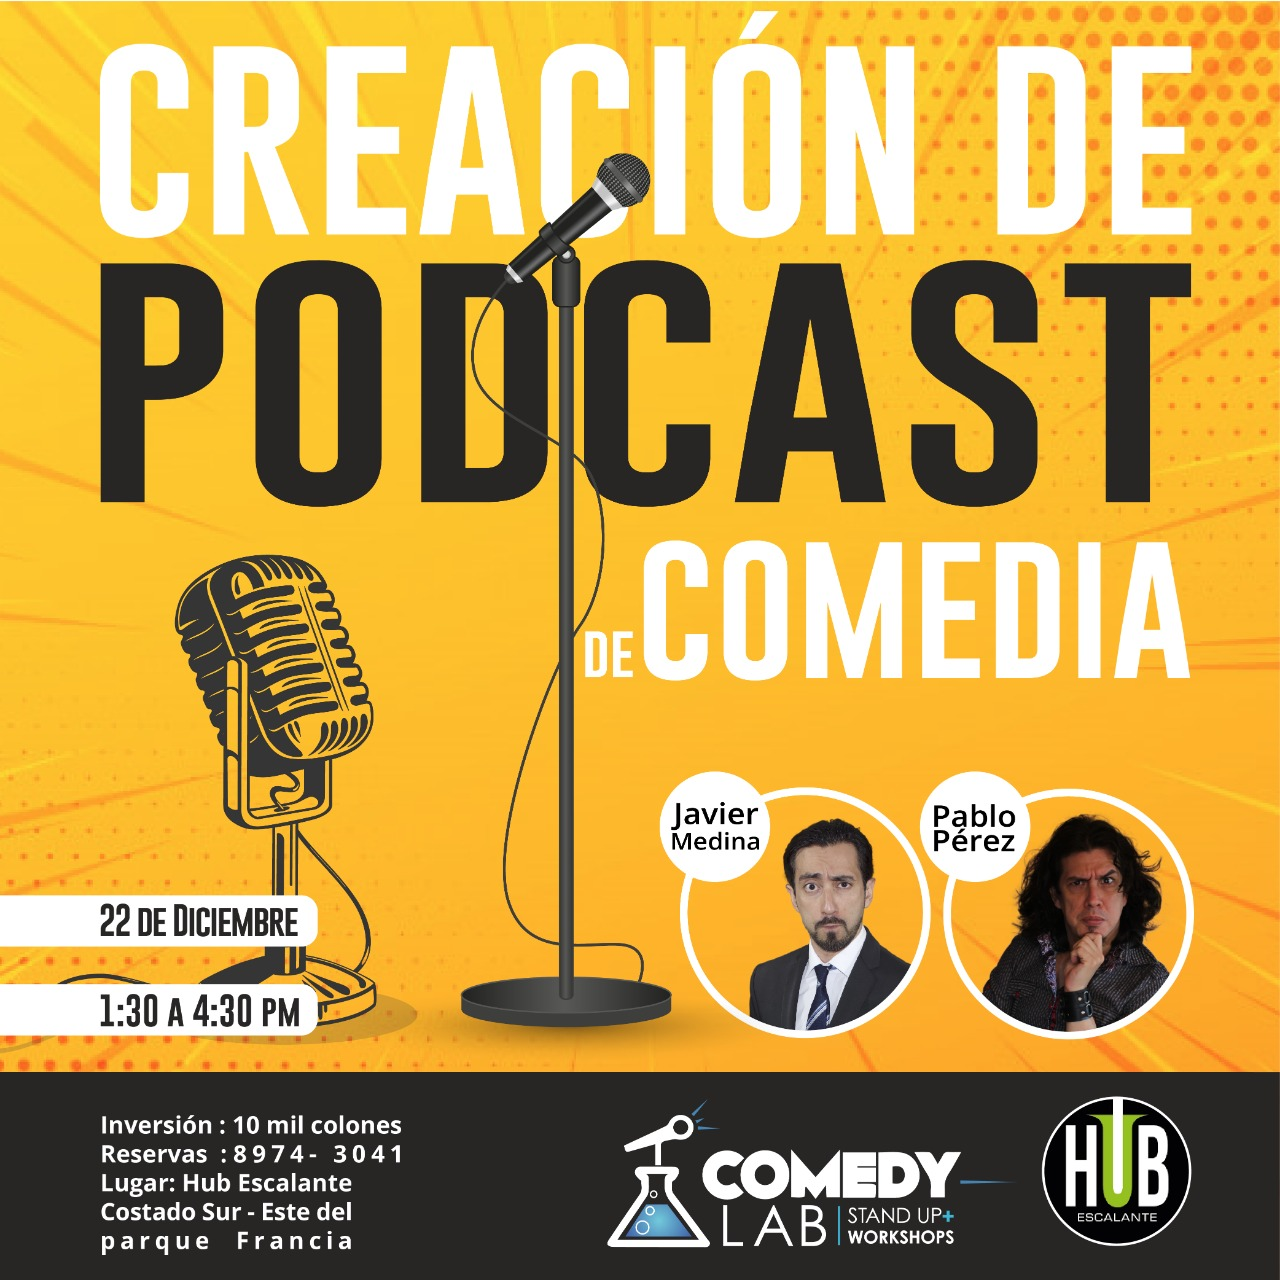 Taller Podcast Comedia